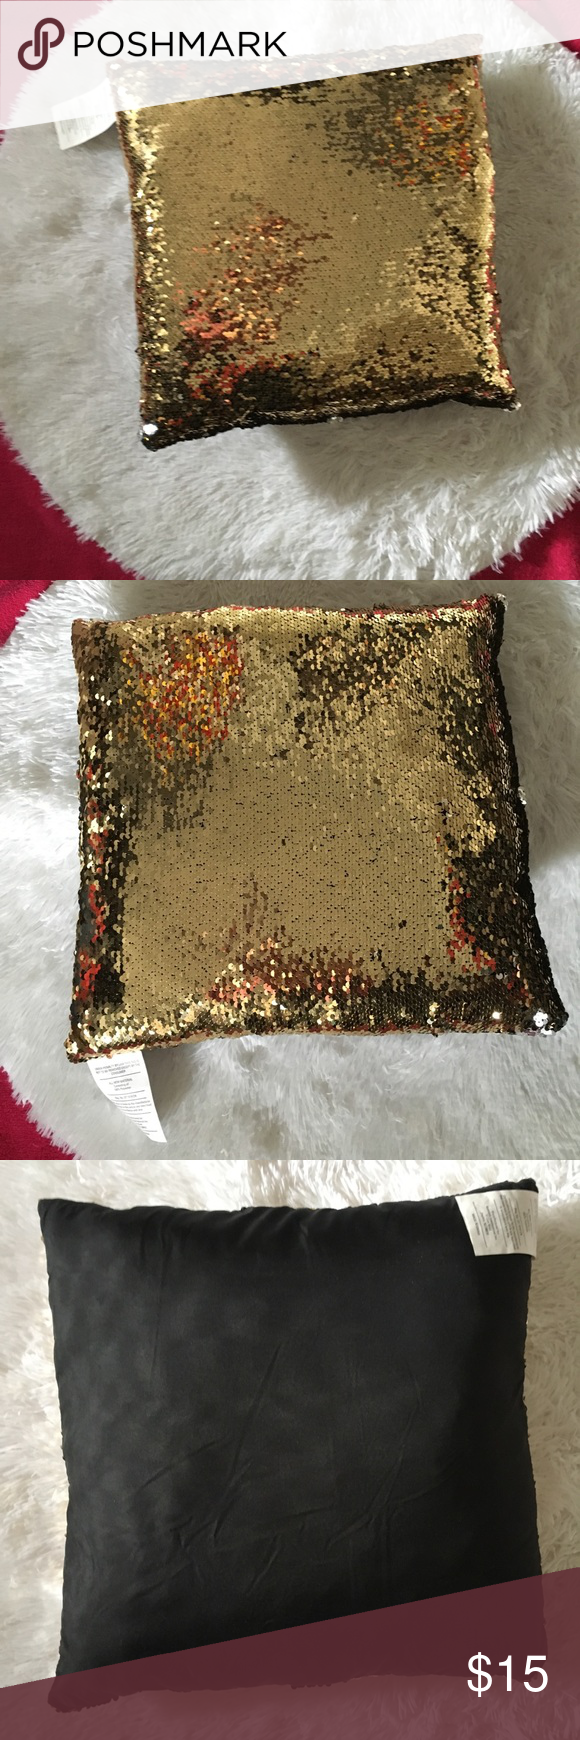 Reversible Sequin gold & silver pillow Material:Sequins  100% brand new and highquality  Shape:Square Home Decoration Comfortable Fashion style  Brand Unbranded  Style, design and decorate with a little extra bling.. Run your hand against the sequin to create an alternative color or design. These throw pillow make for great gifts for either a bridesmaid or house warming party!   Sequin applied to one side of the pillow. The back size of the pillow cover is plain black unbranded Other #howtoapply #howtoapplybling